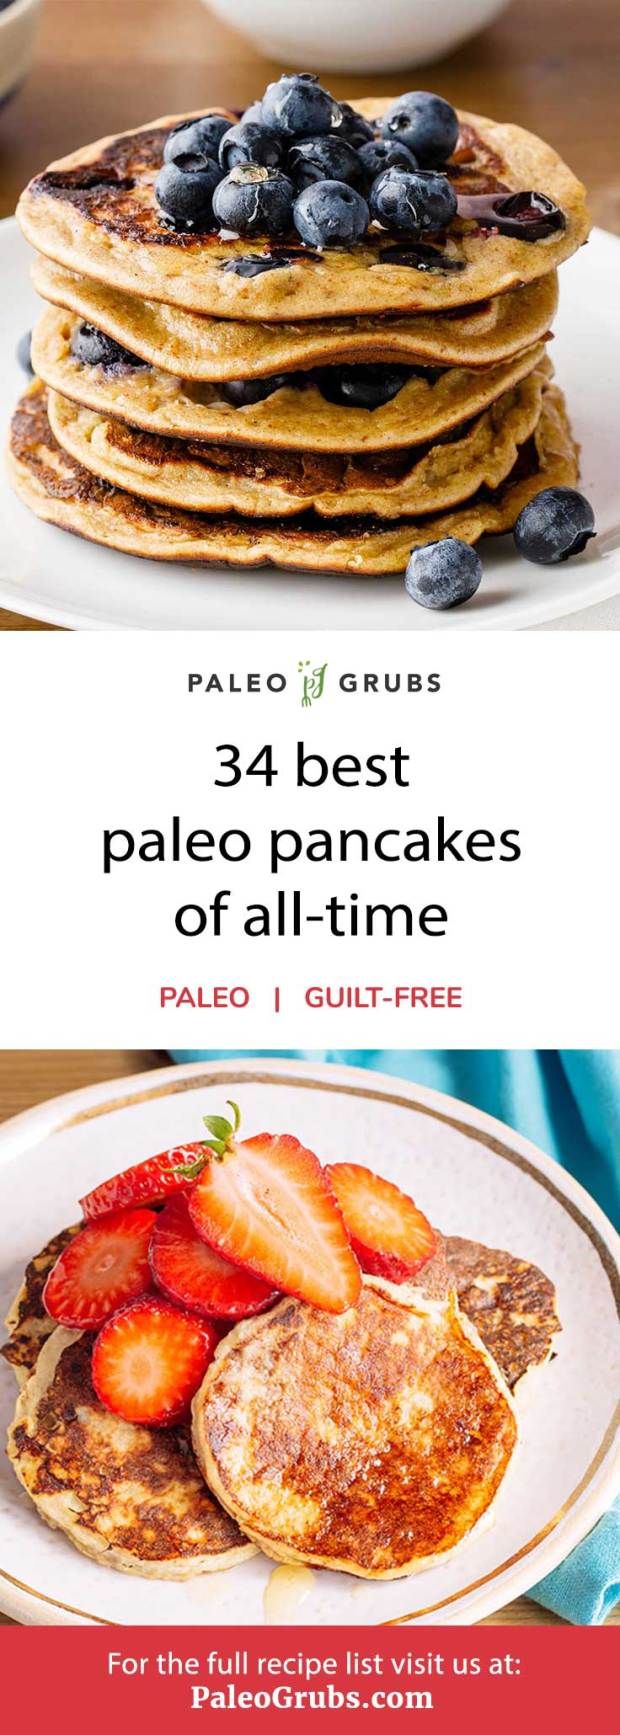 34 Best Paleo Pancakes of All-Time- a must-read for pancakes lovers.